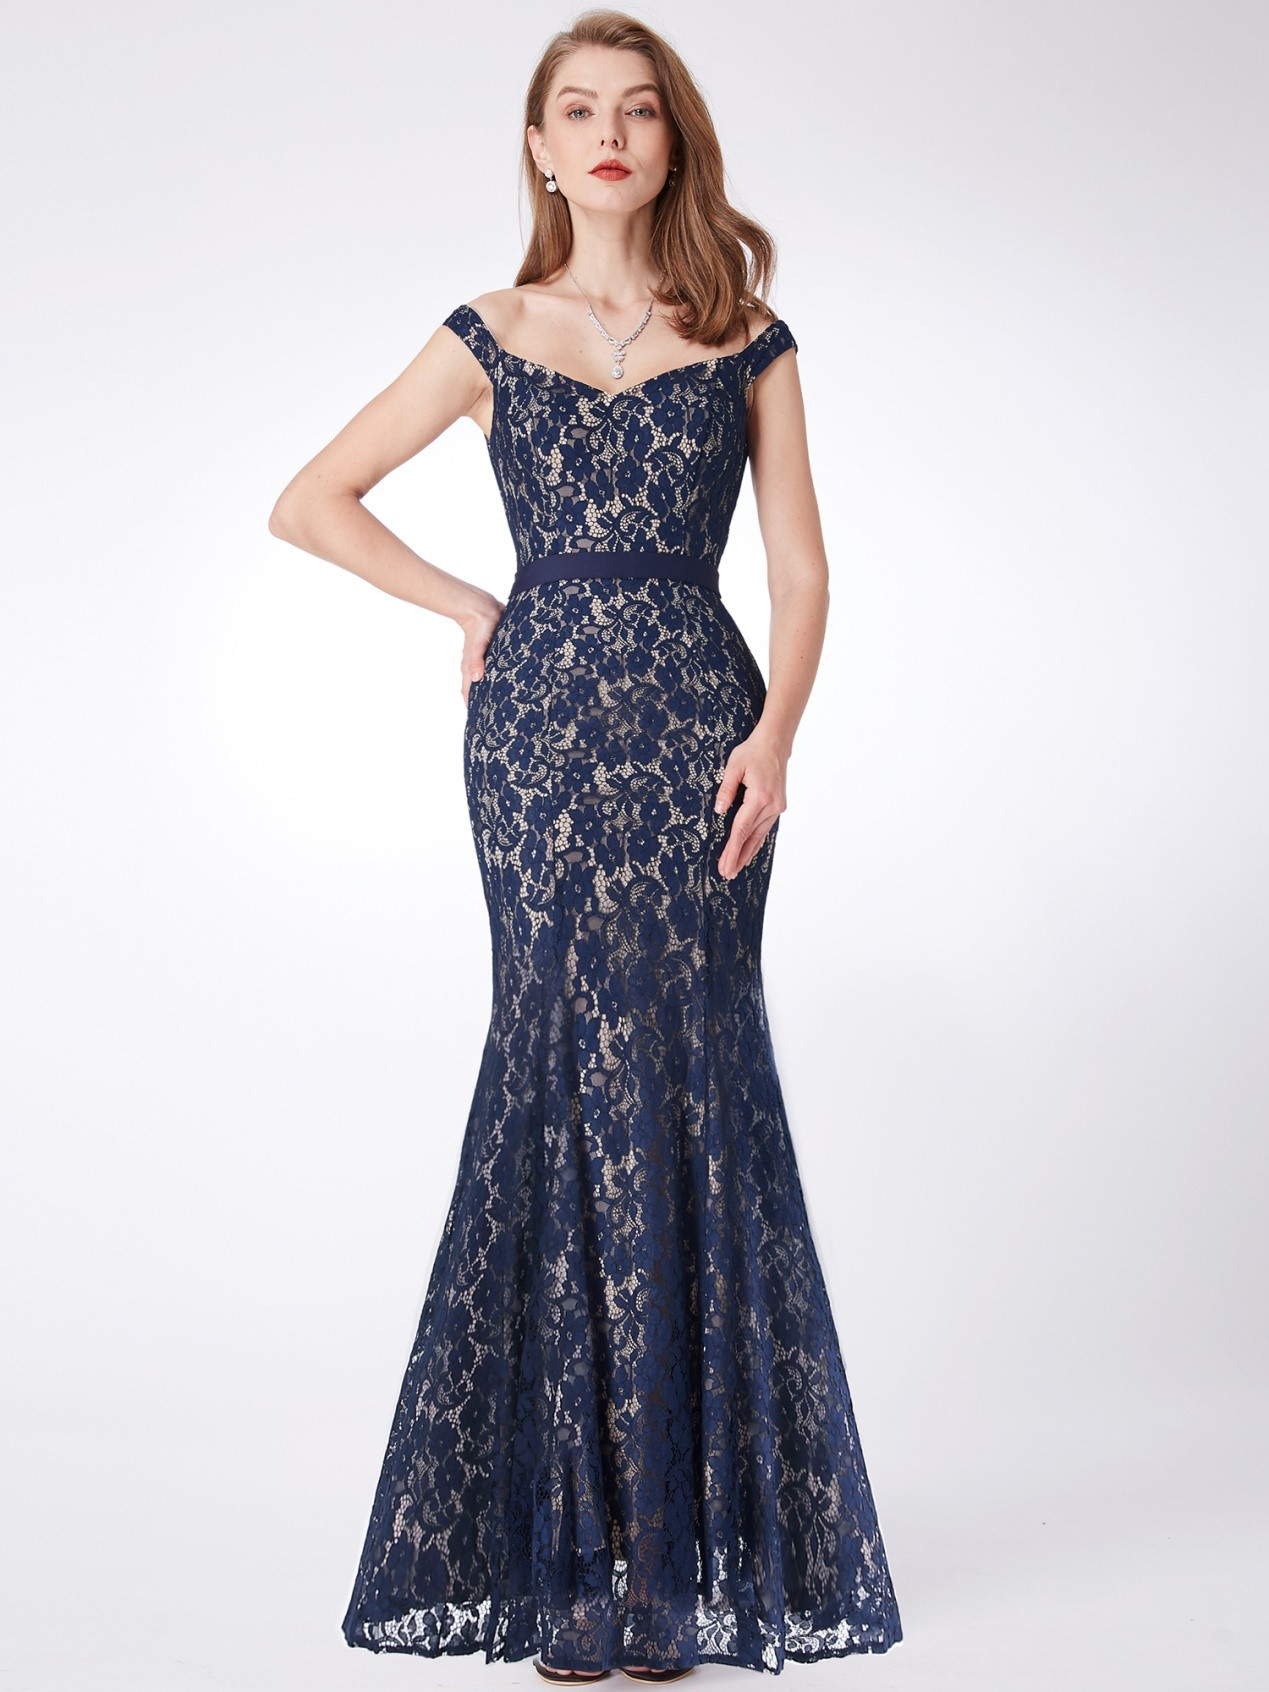 How to choose a prom dress for Hourglass body type?